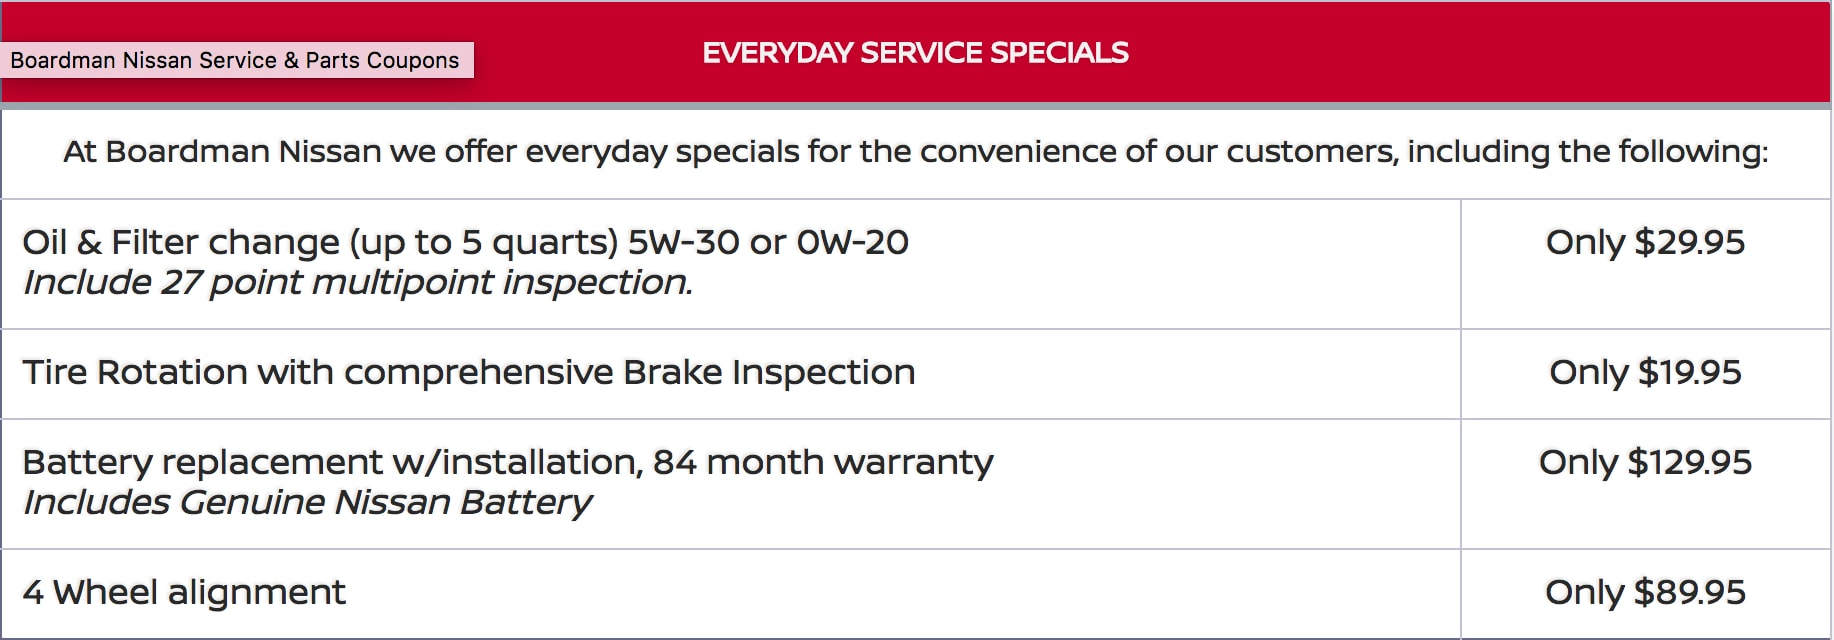 chrysler new service specials department jeep chapman automall valley coupons nissan logo